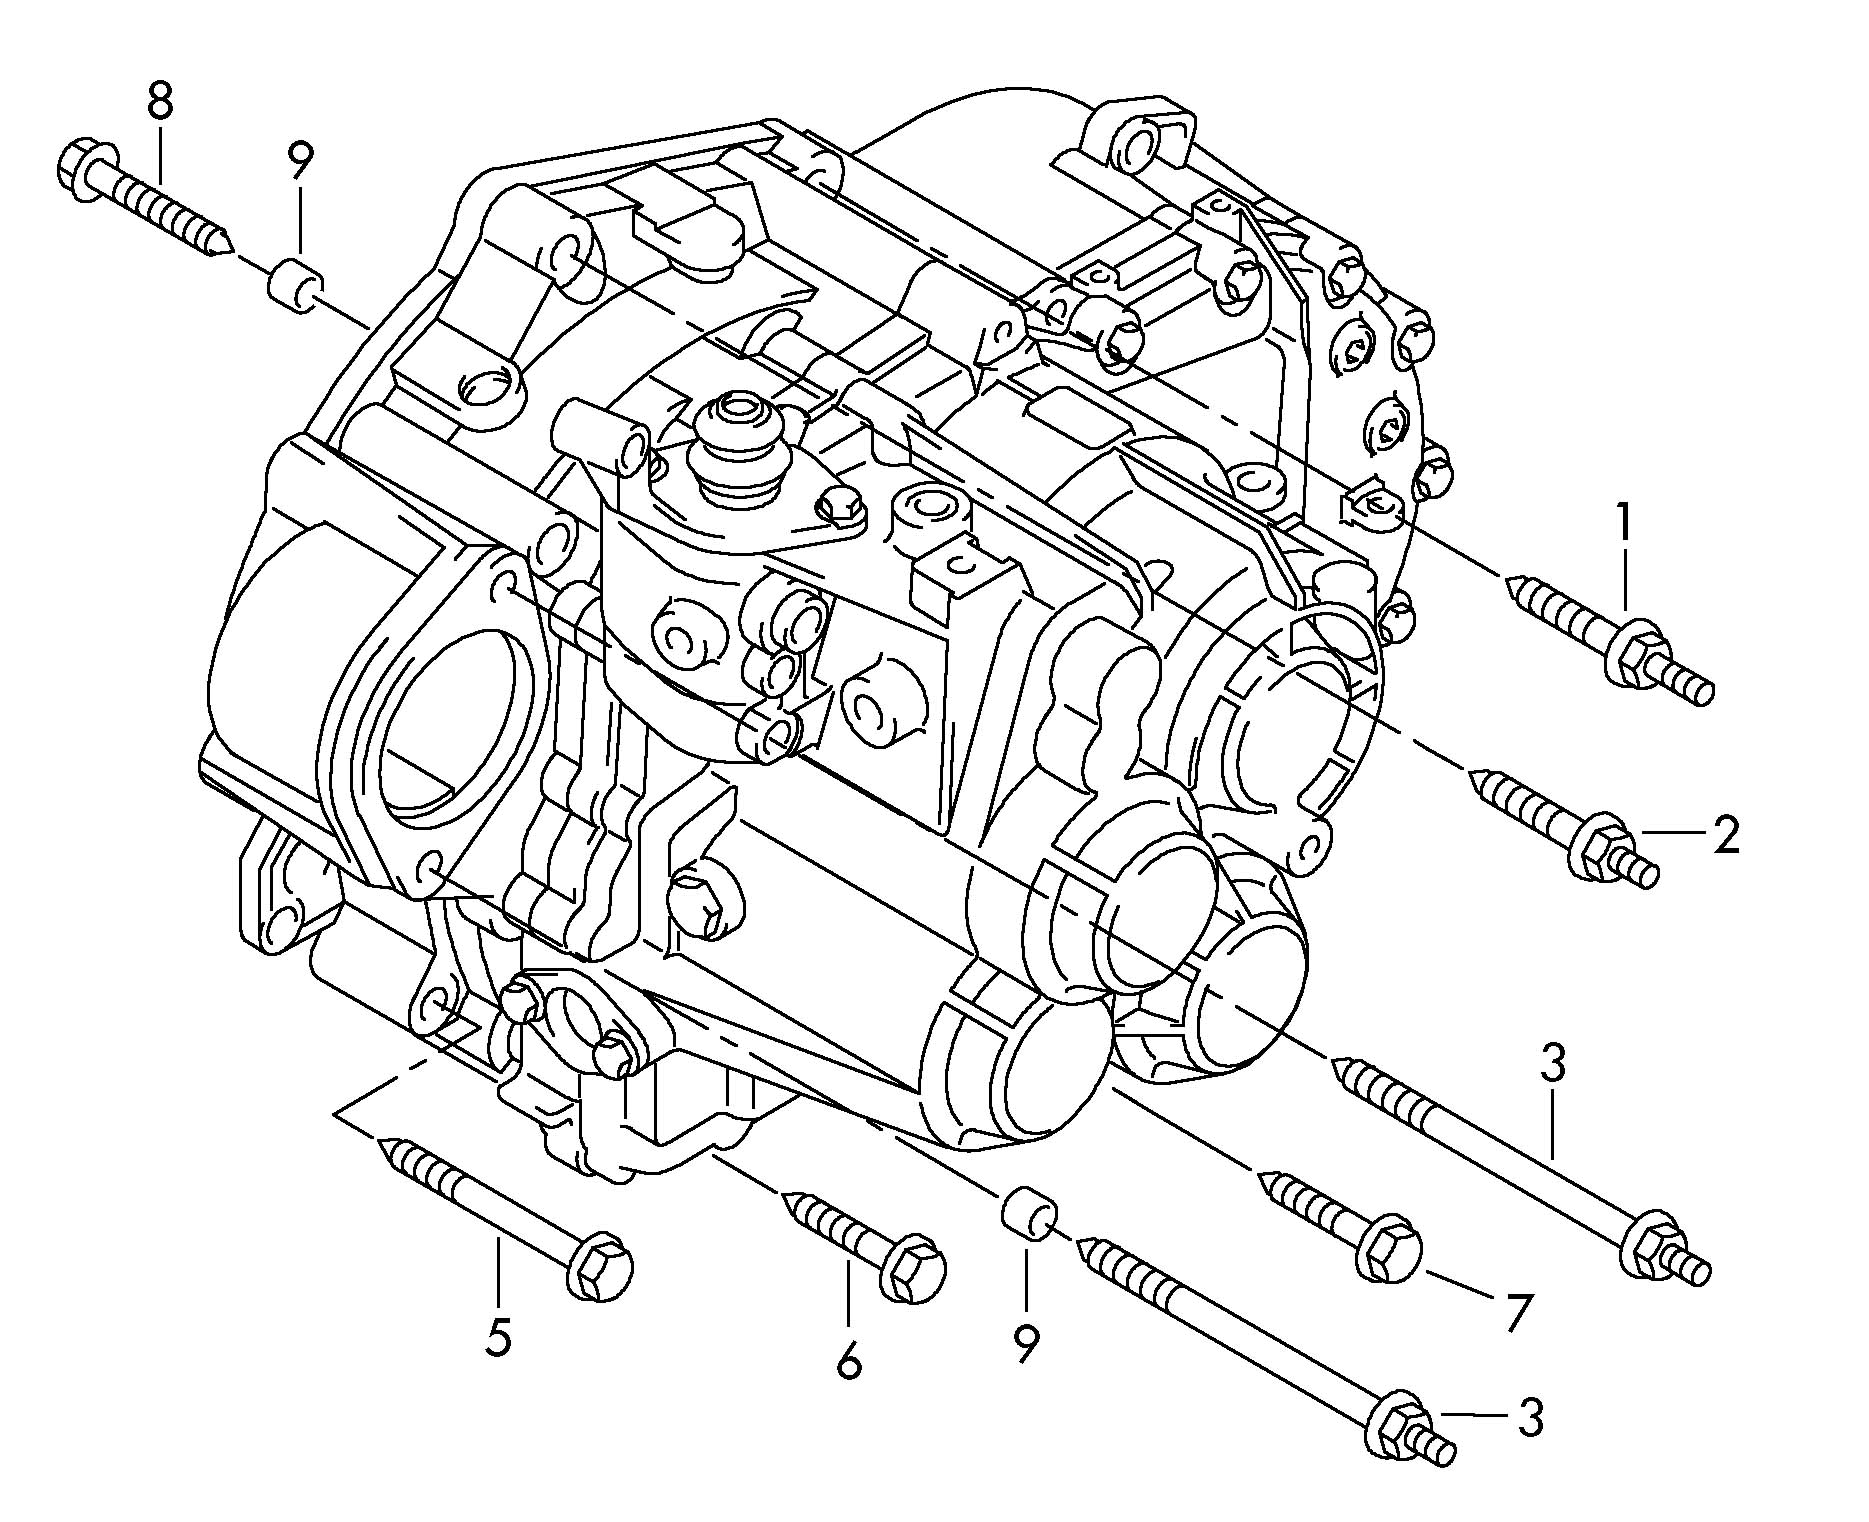 Volkswagen Tiguan Mounting parts for engine and